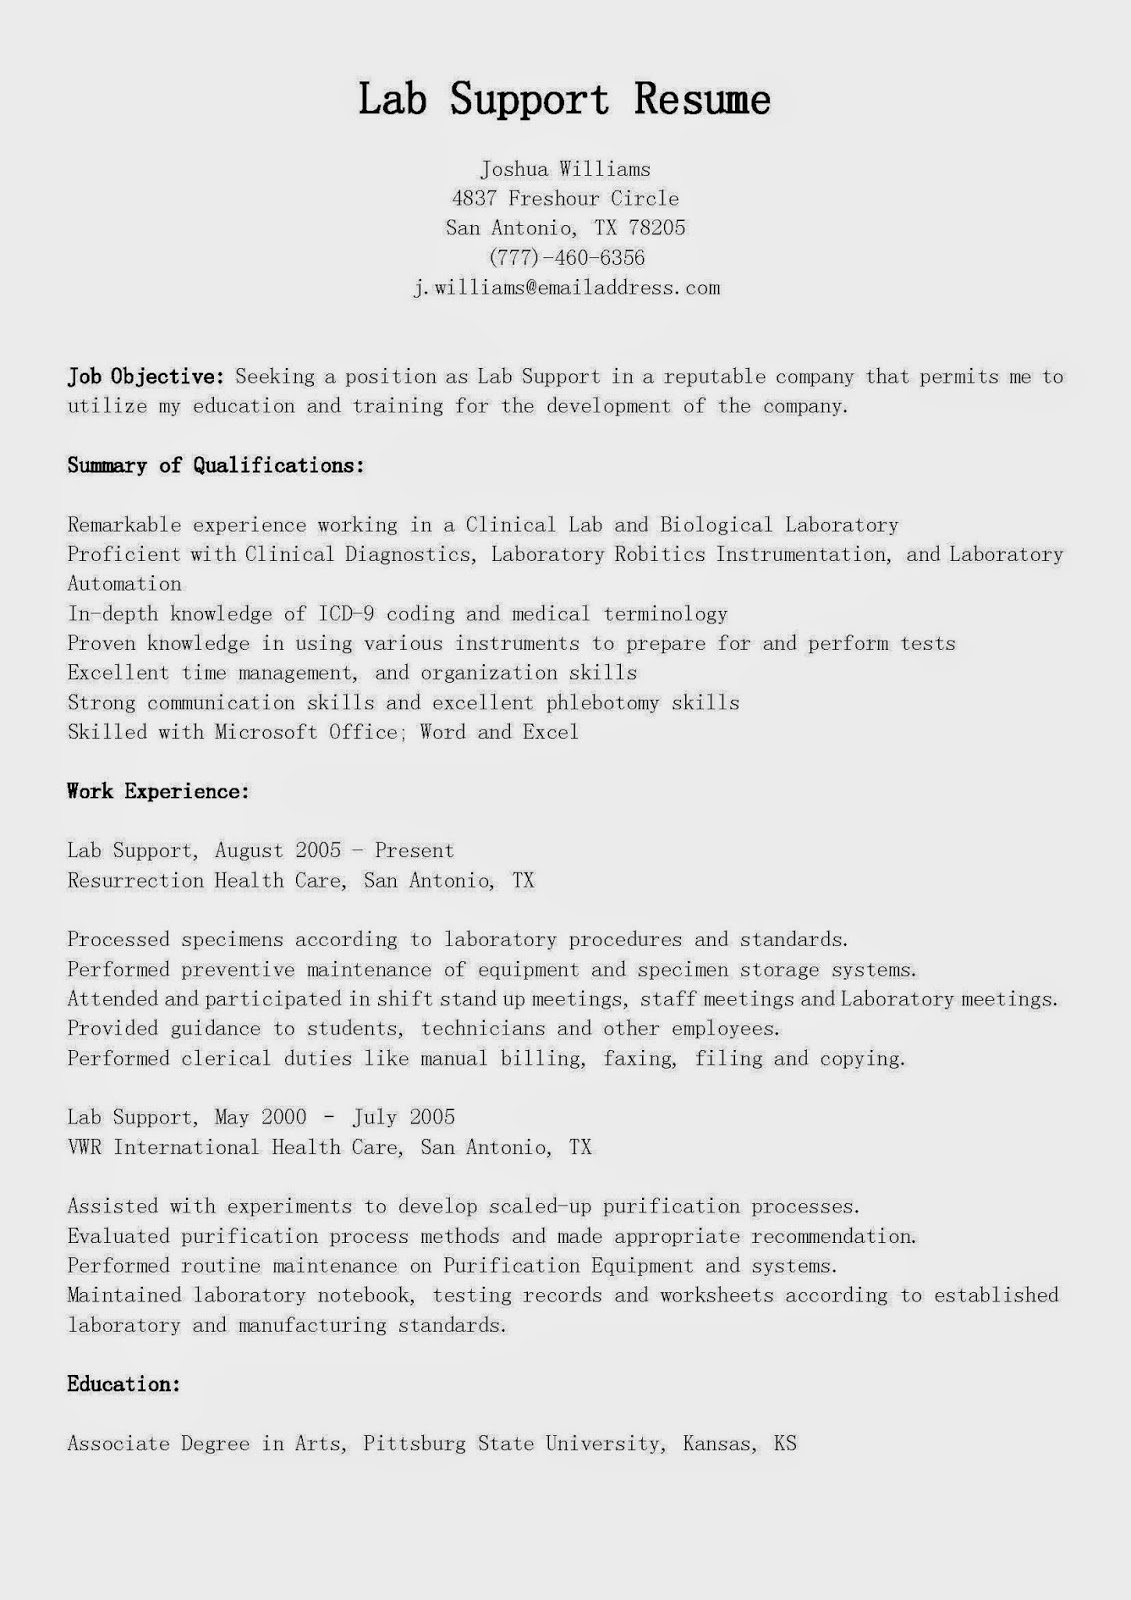 Lab Resume Examples Resume Samples Lab Support Resume Sample